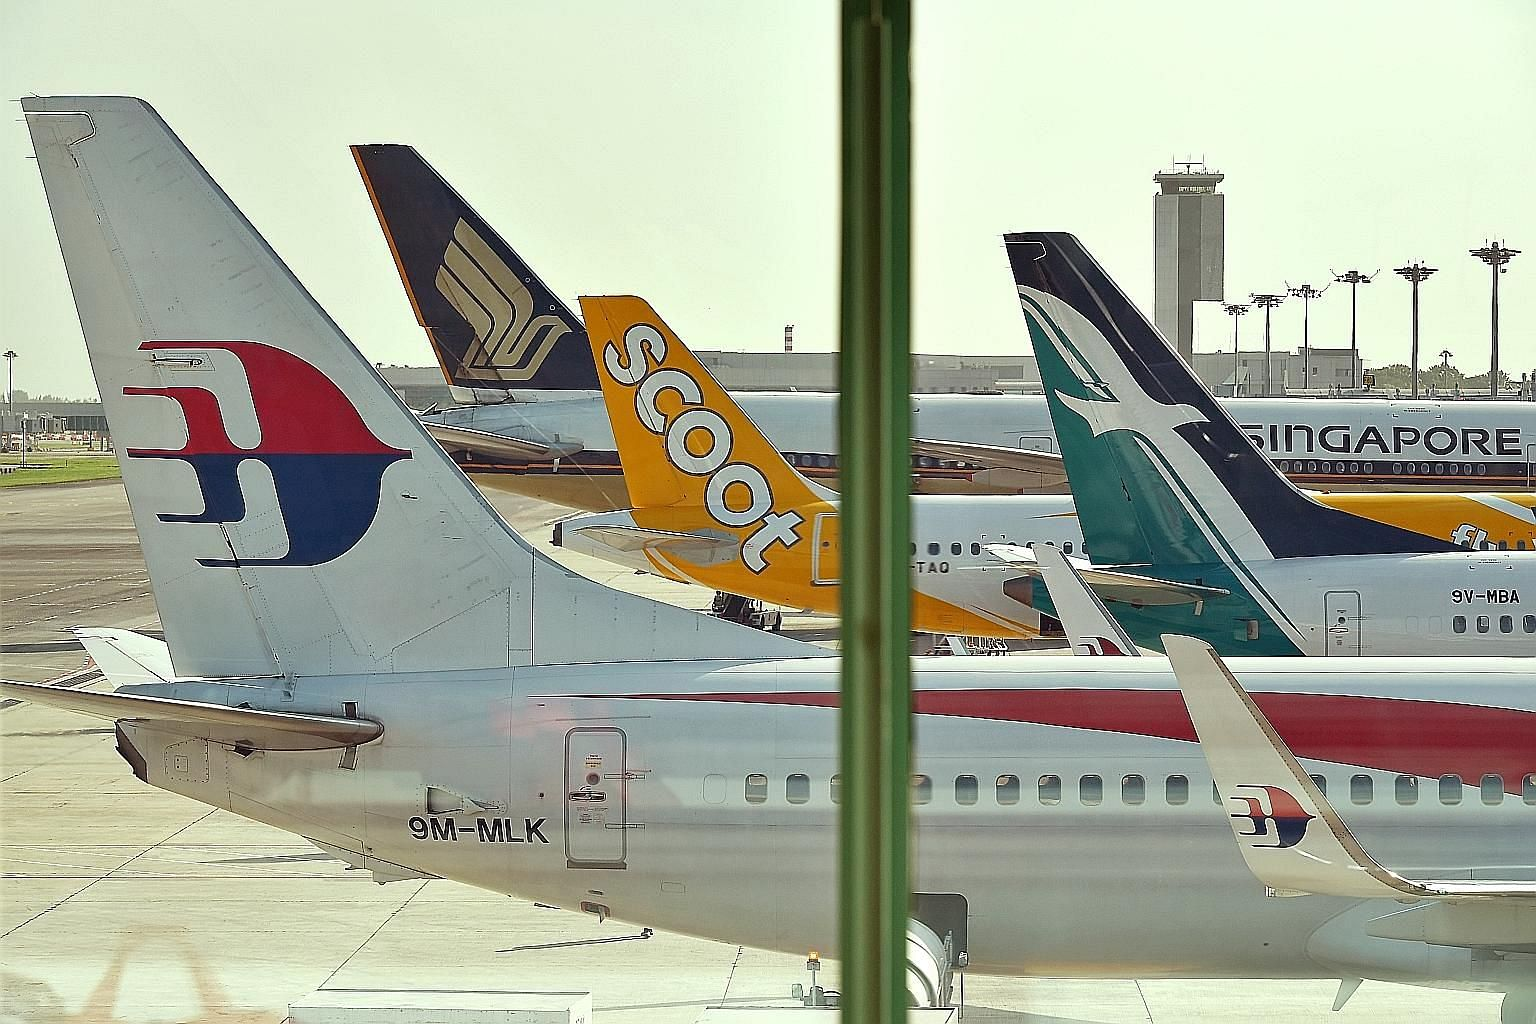 The new agreement includes Singapore Airlines subsidiaries SilkAir and Scoot, as well as Malaysia Airlines' sister airline Firefly.